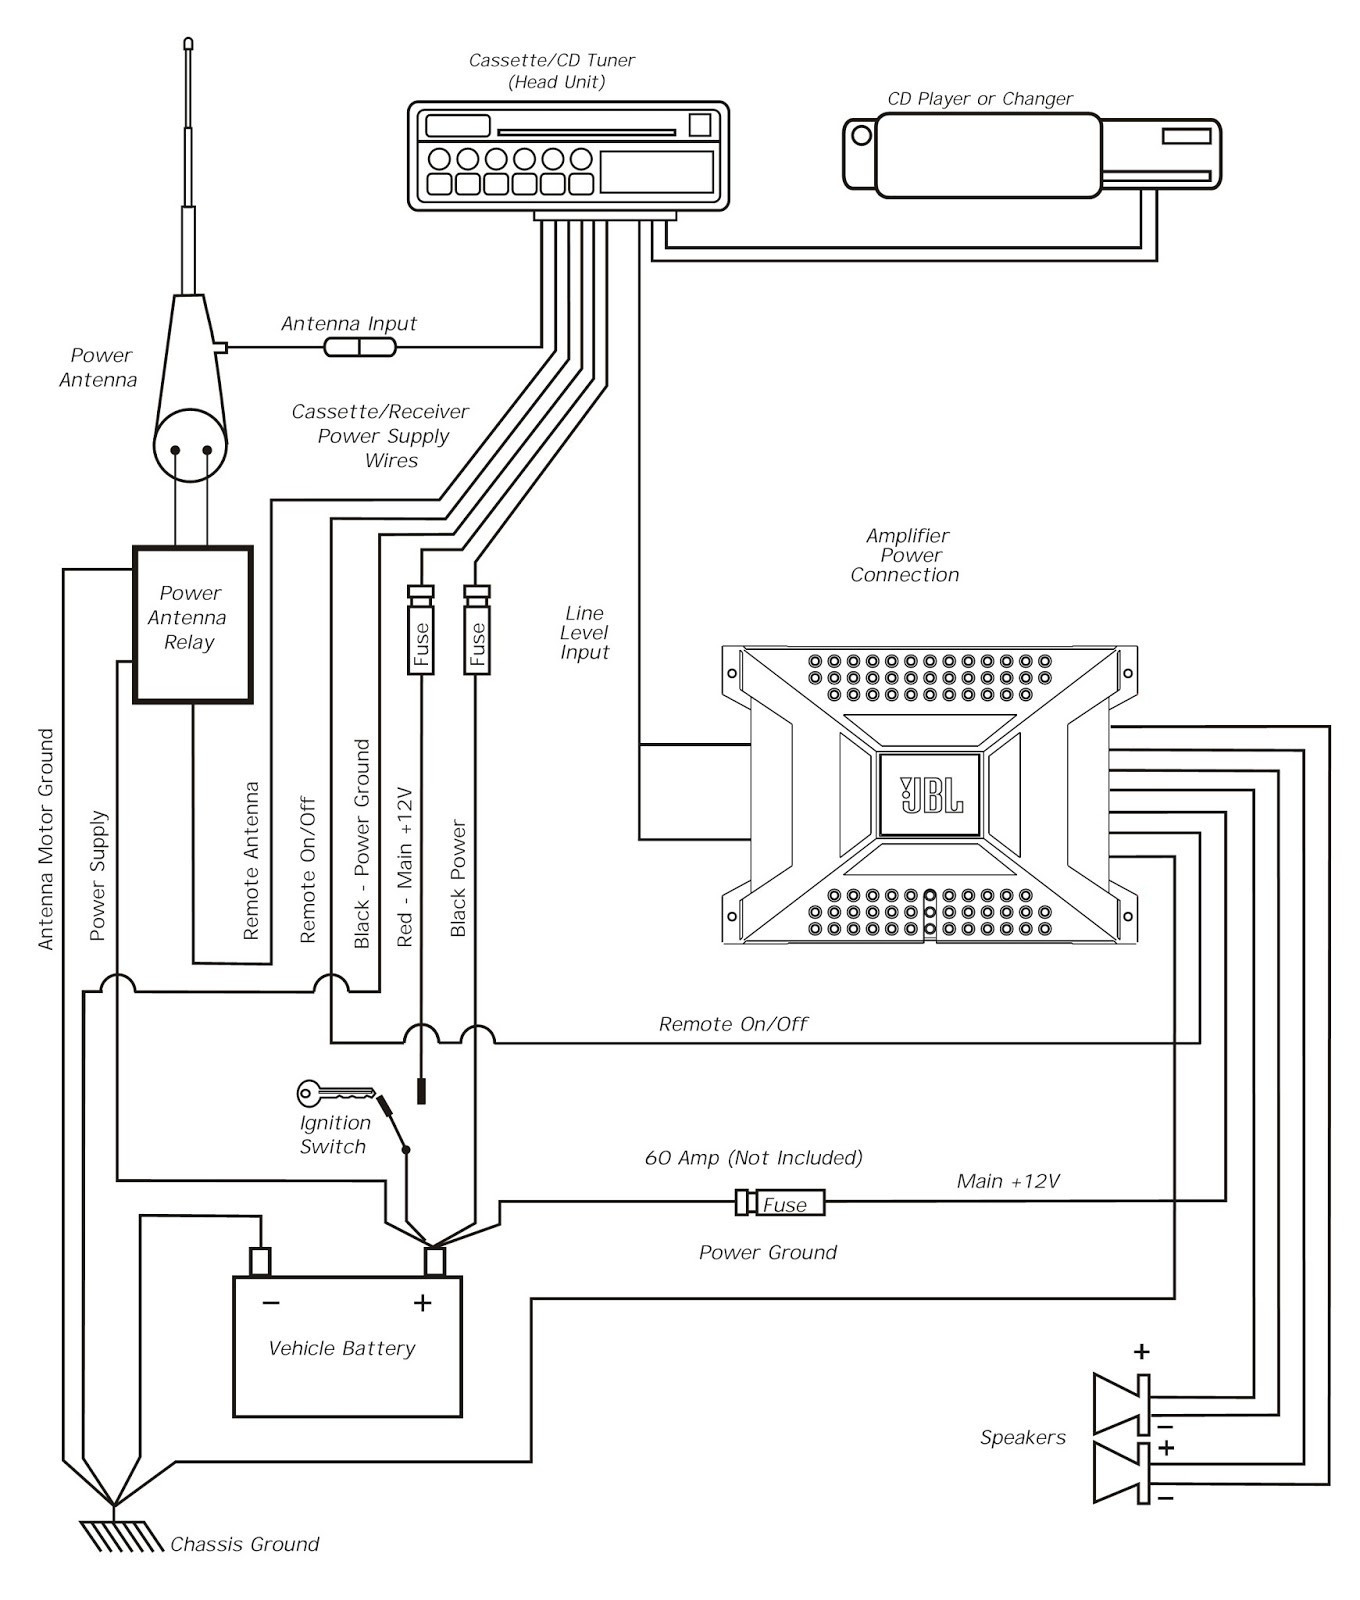 Usb 2 0 Wiring Diagram | Best Wiring Library - Usb 2 Wiring Diagram